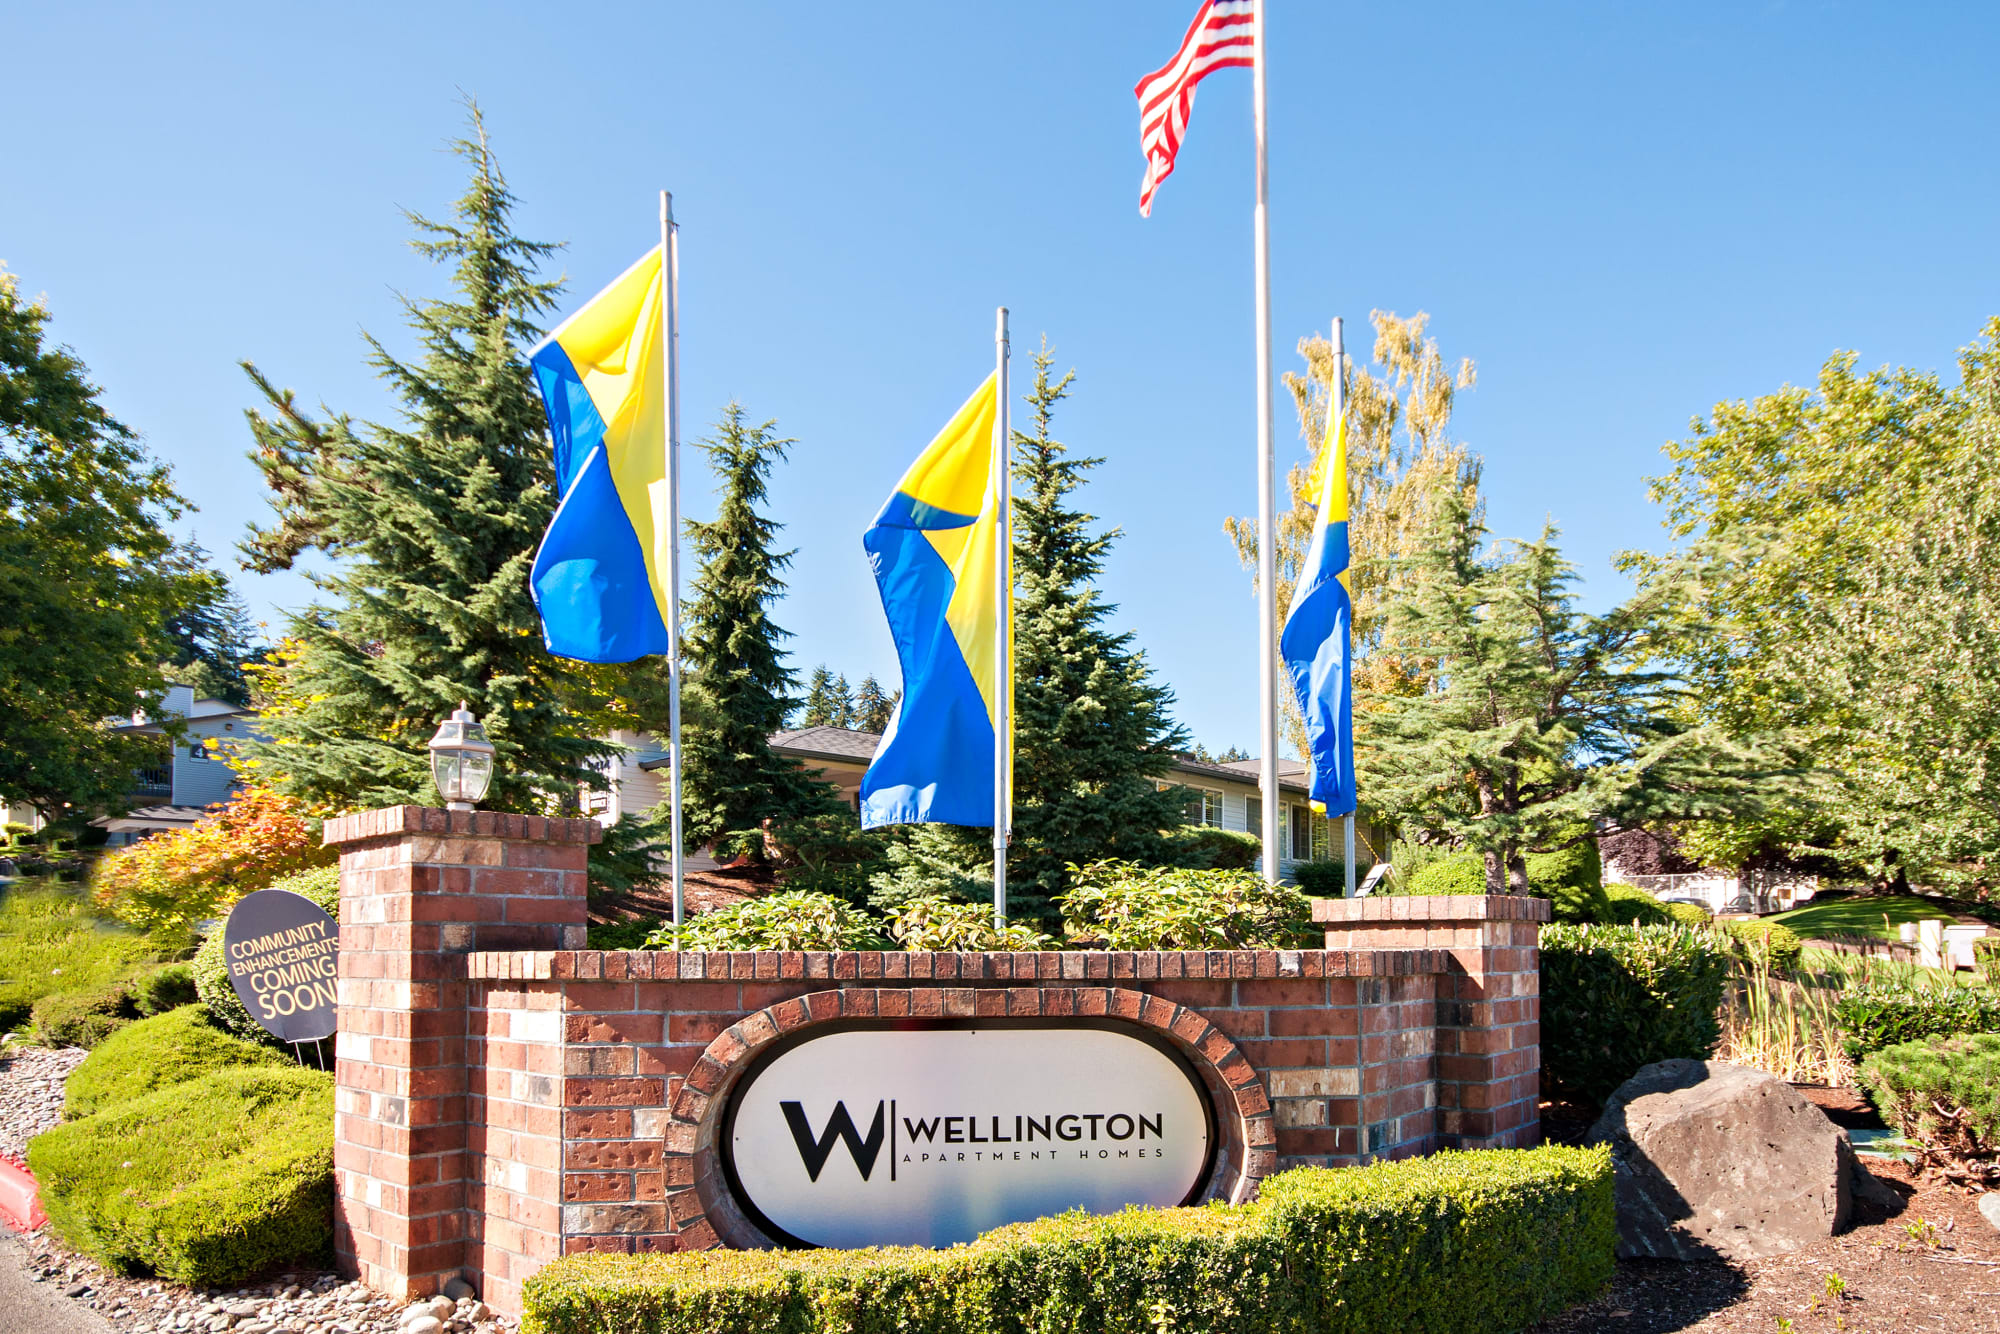 The front monument sign at Wellington Apartment Homes in Silverdale, Washington